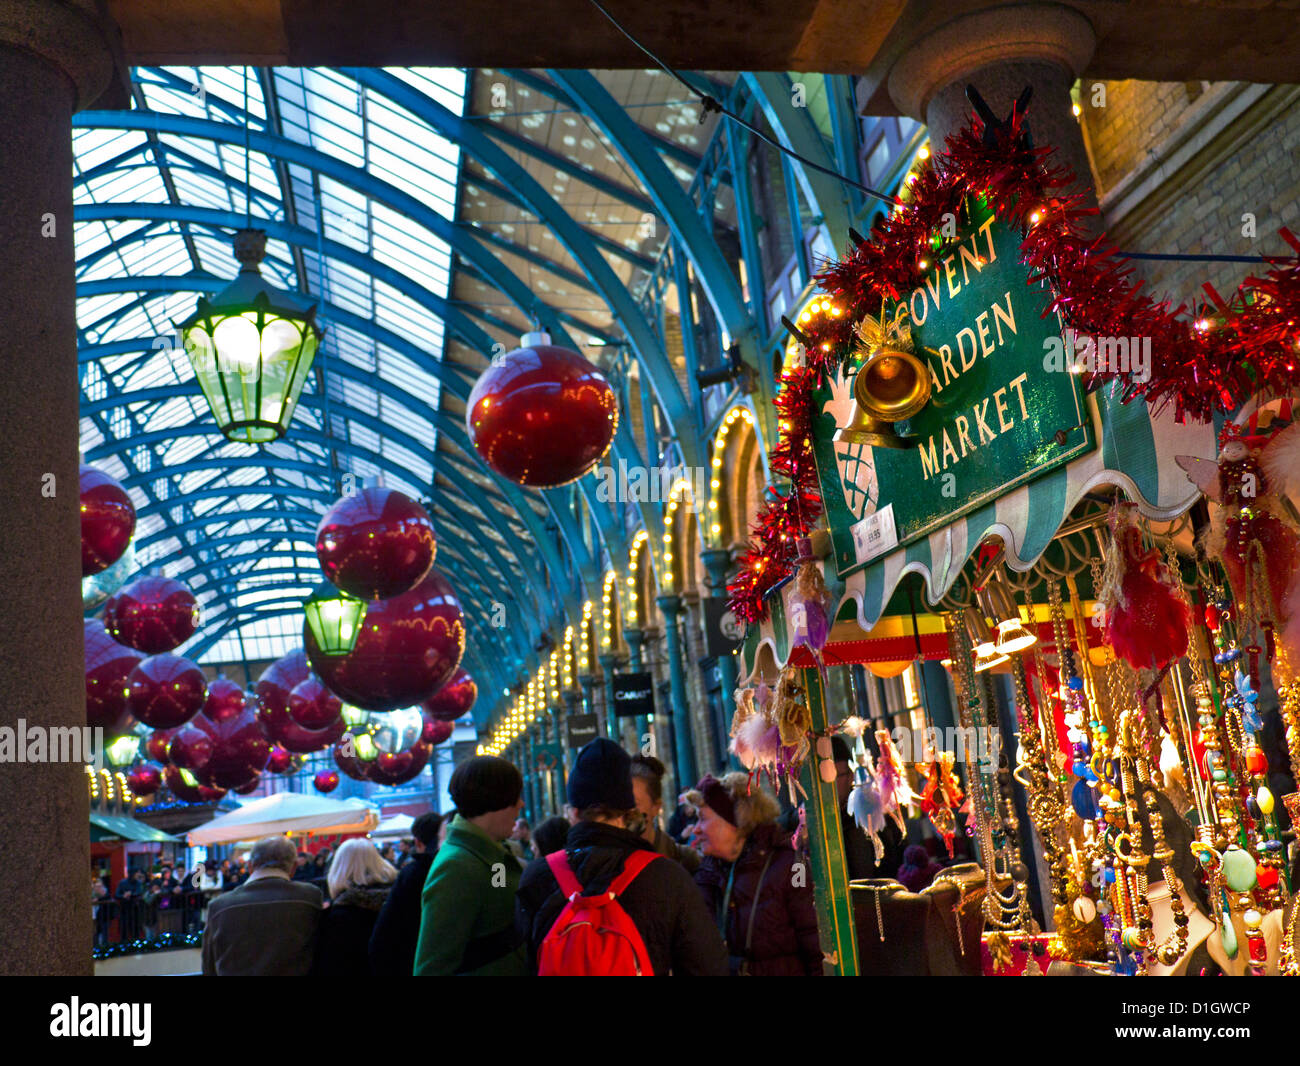 Ravishing The Apple Market Hall At Covent Garden With Christmas Decorations  With Interesting Stock Photo  The Apple Market Hall At Covent Garden With Christmas  Decorations London Uk With Delightful Garden Desings Also Garden Birds Images In Addition Gastropub Covent Garden And Strawberry Raised Garden Beds As Well As The Secret Garden Meditation Additionally Hillsborough Garden Club From Alamycom With   Interesting The Apple Market Hall At Covent Garden With Christmas Decorations  With Delightful Stock Photo  The Apple Market Hall At Covent Garden With Christmas  Decorations London Uk And Ravishing Garden Desings Also Garden Birds Images In Addition Gastropub Covent Garden From Alamycom